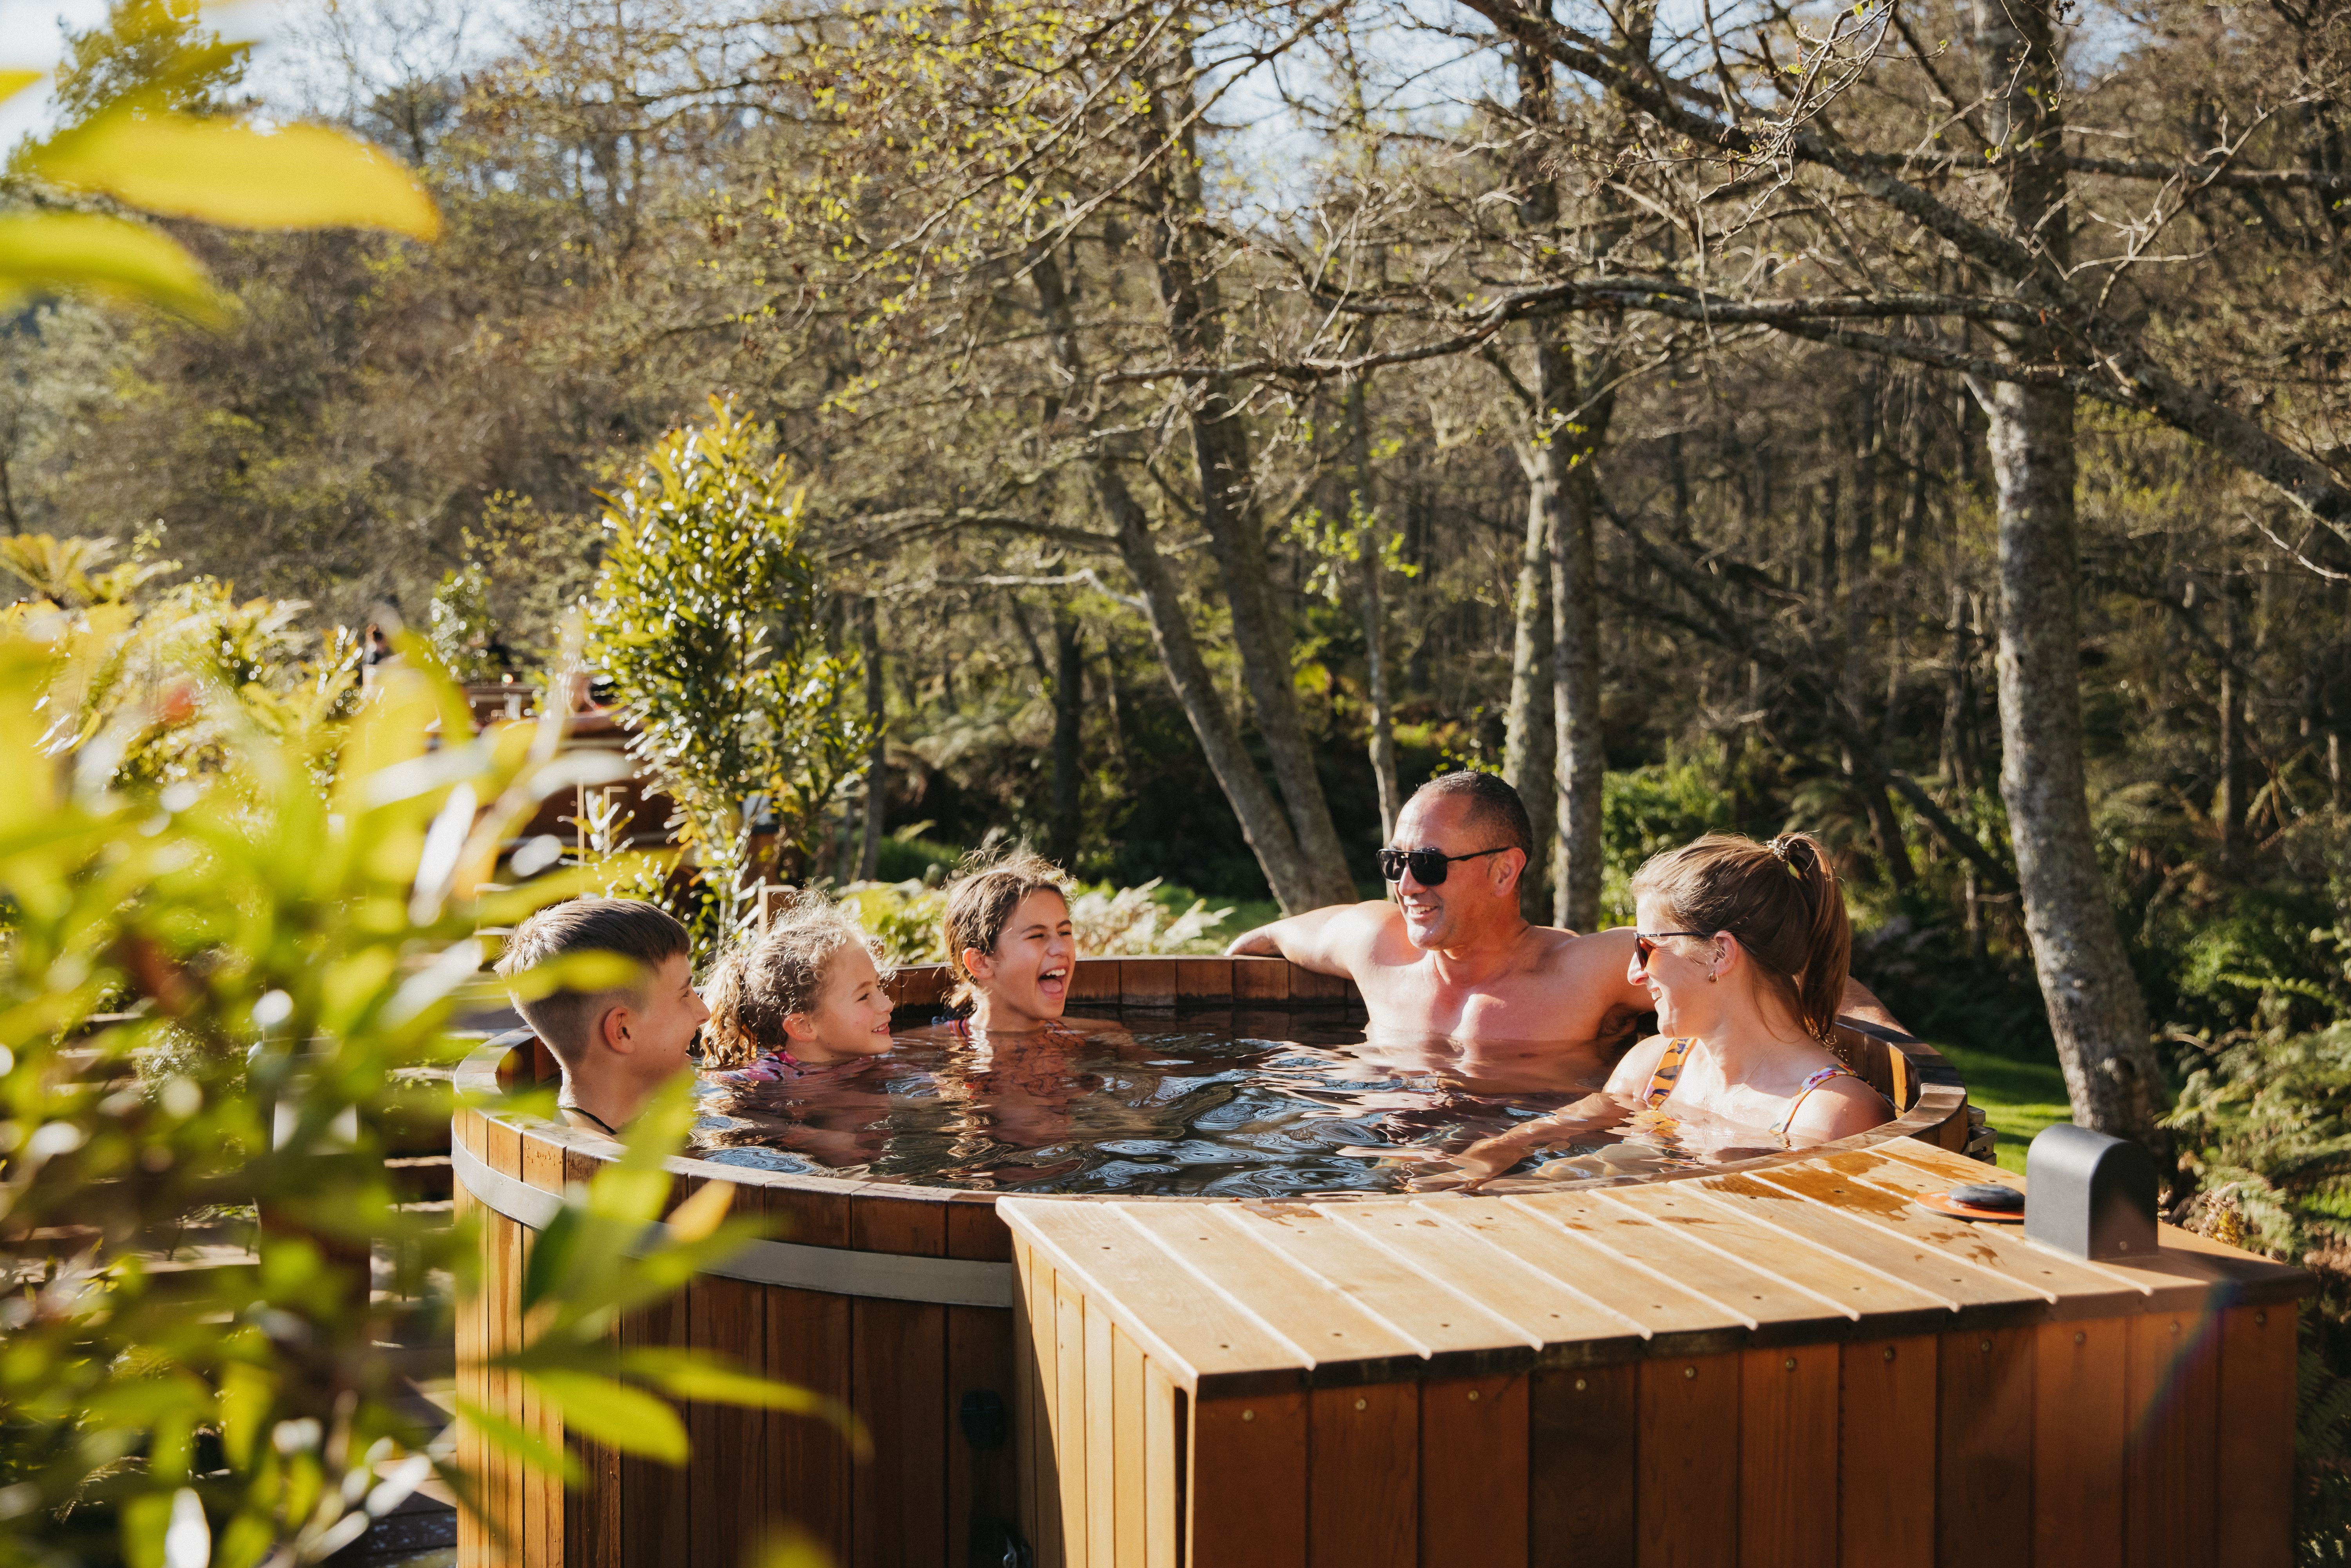 Hot tub family laughing